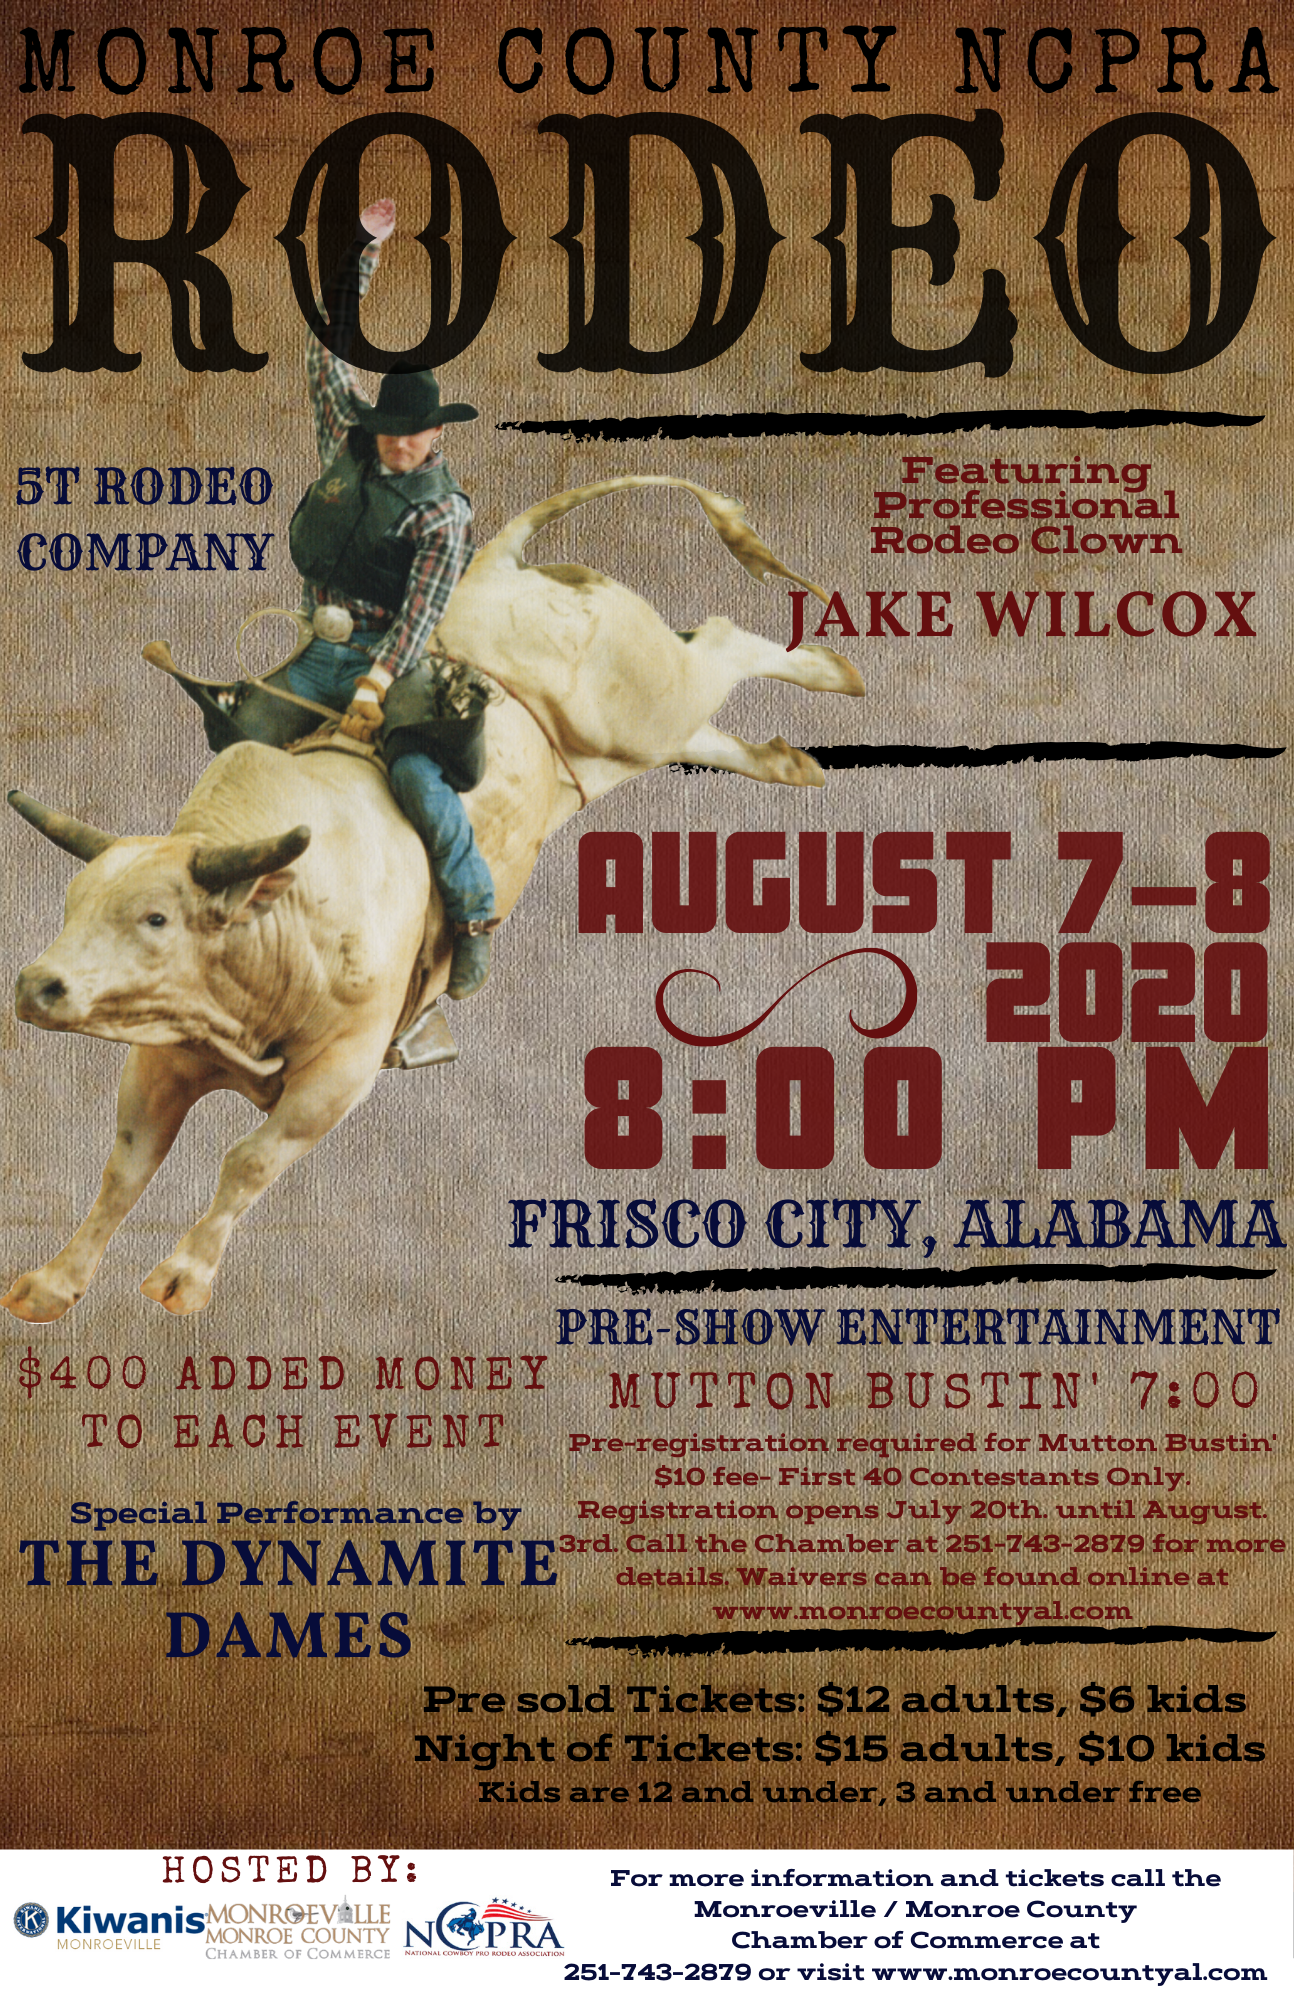 https://alabama-travel.s3.amazonaws.com/partners-uploads/photo/image/5e628ee7a1dede0008691137/rodeo_poster.png